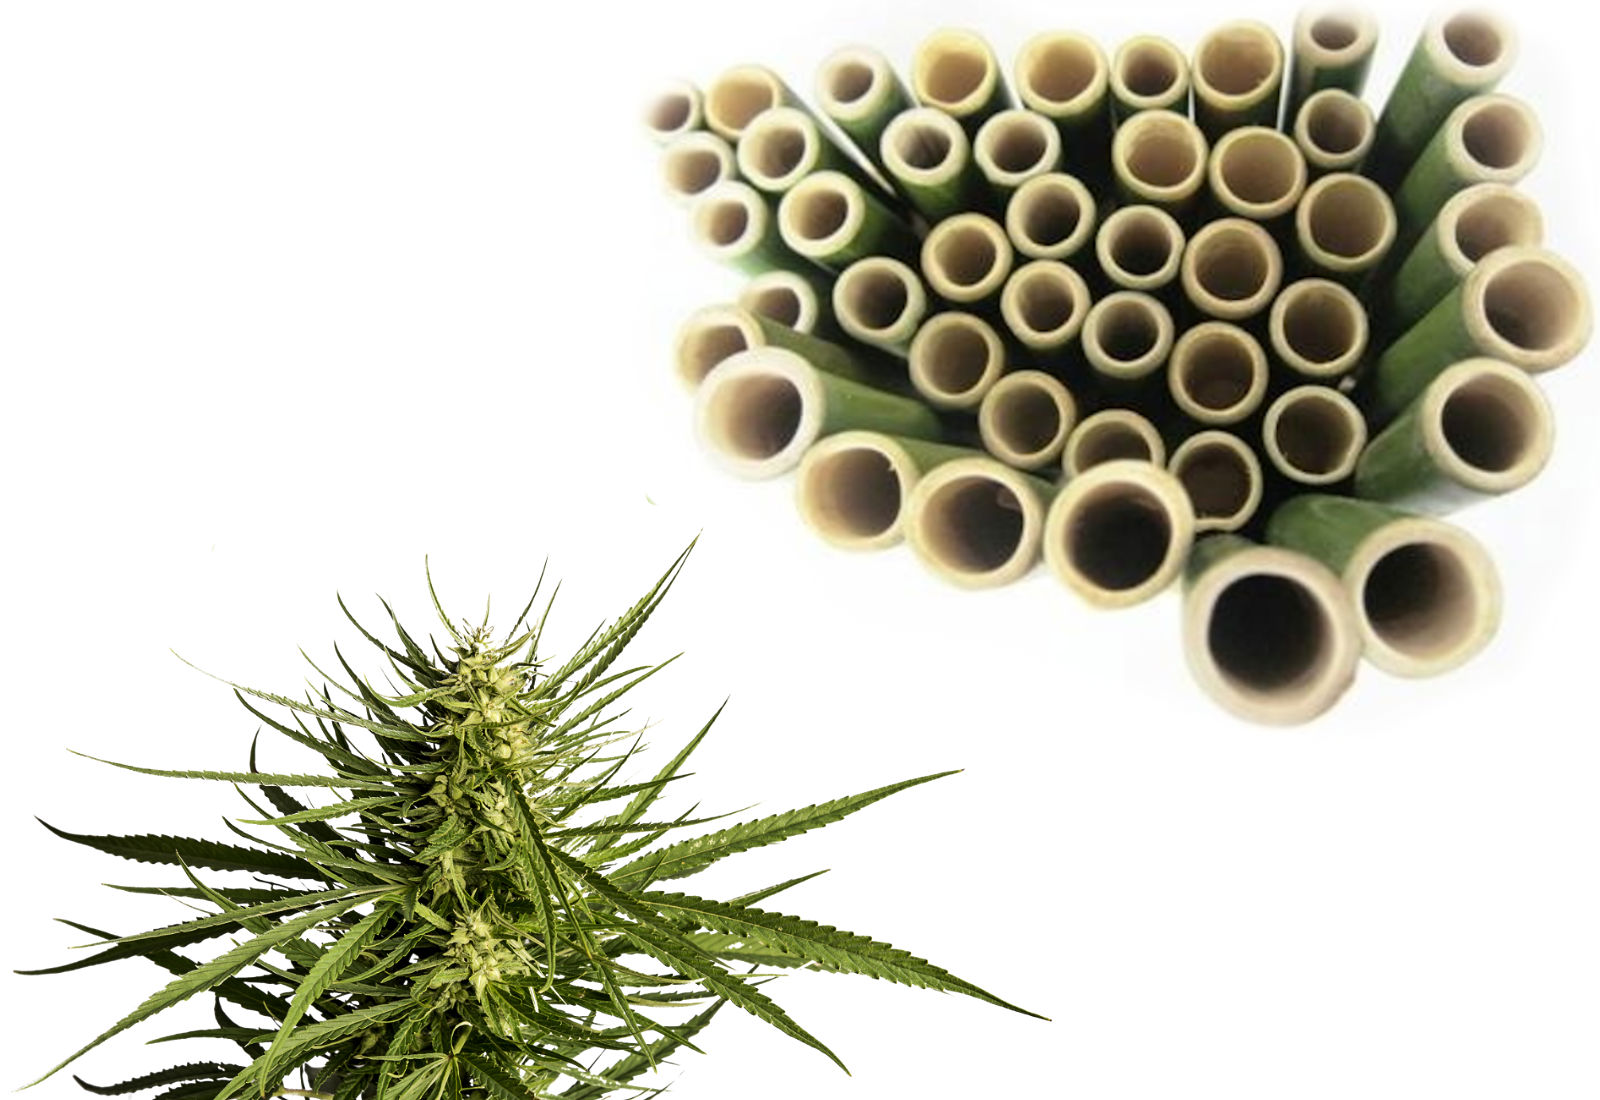 HEMP & BAMBOO CAN DO - REPLACING TOXIC PETROCHEMICALS IN YOUR PRODUCTS